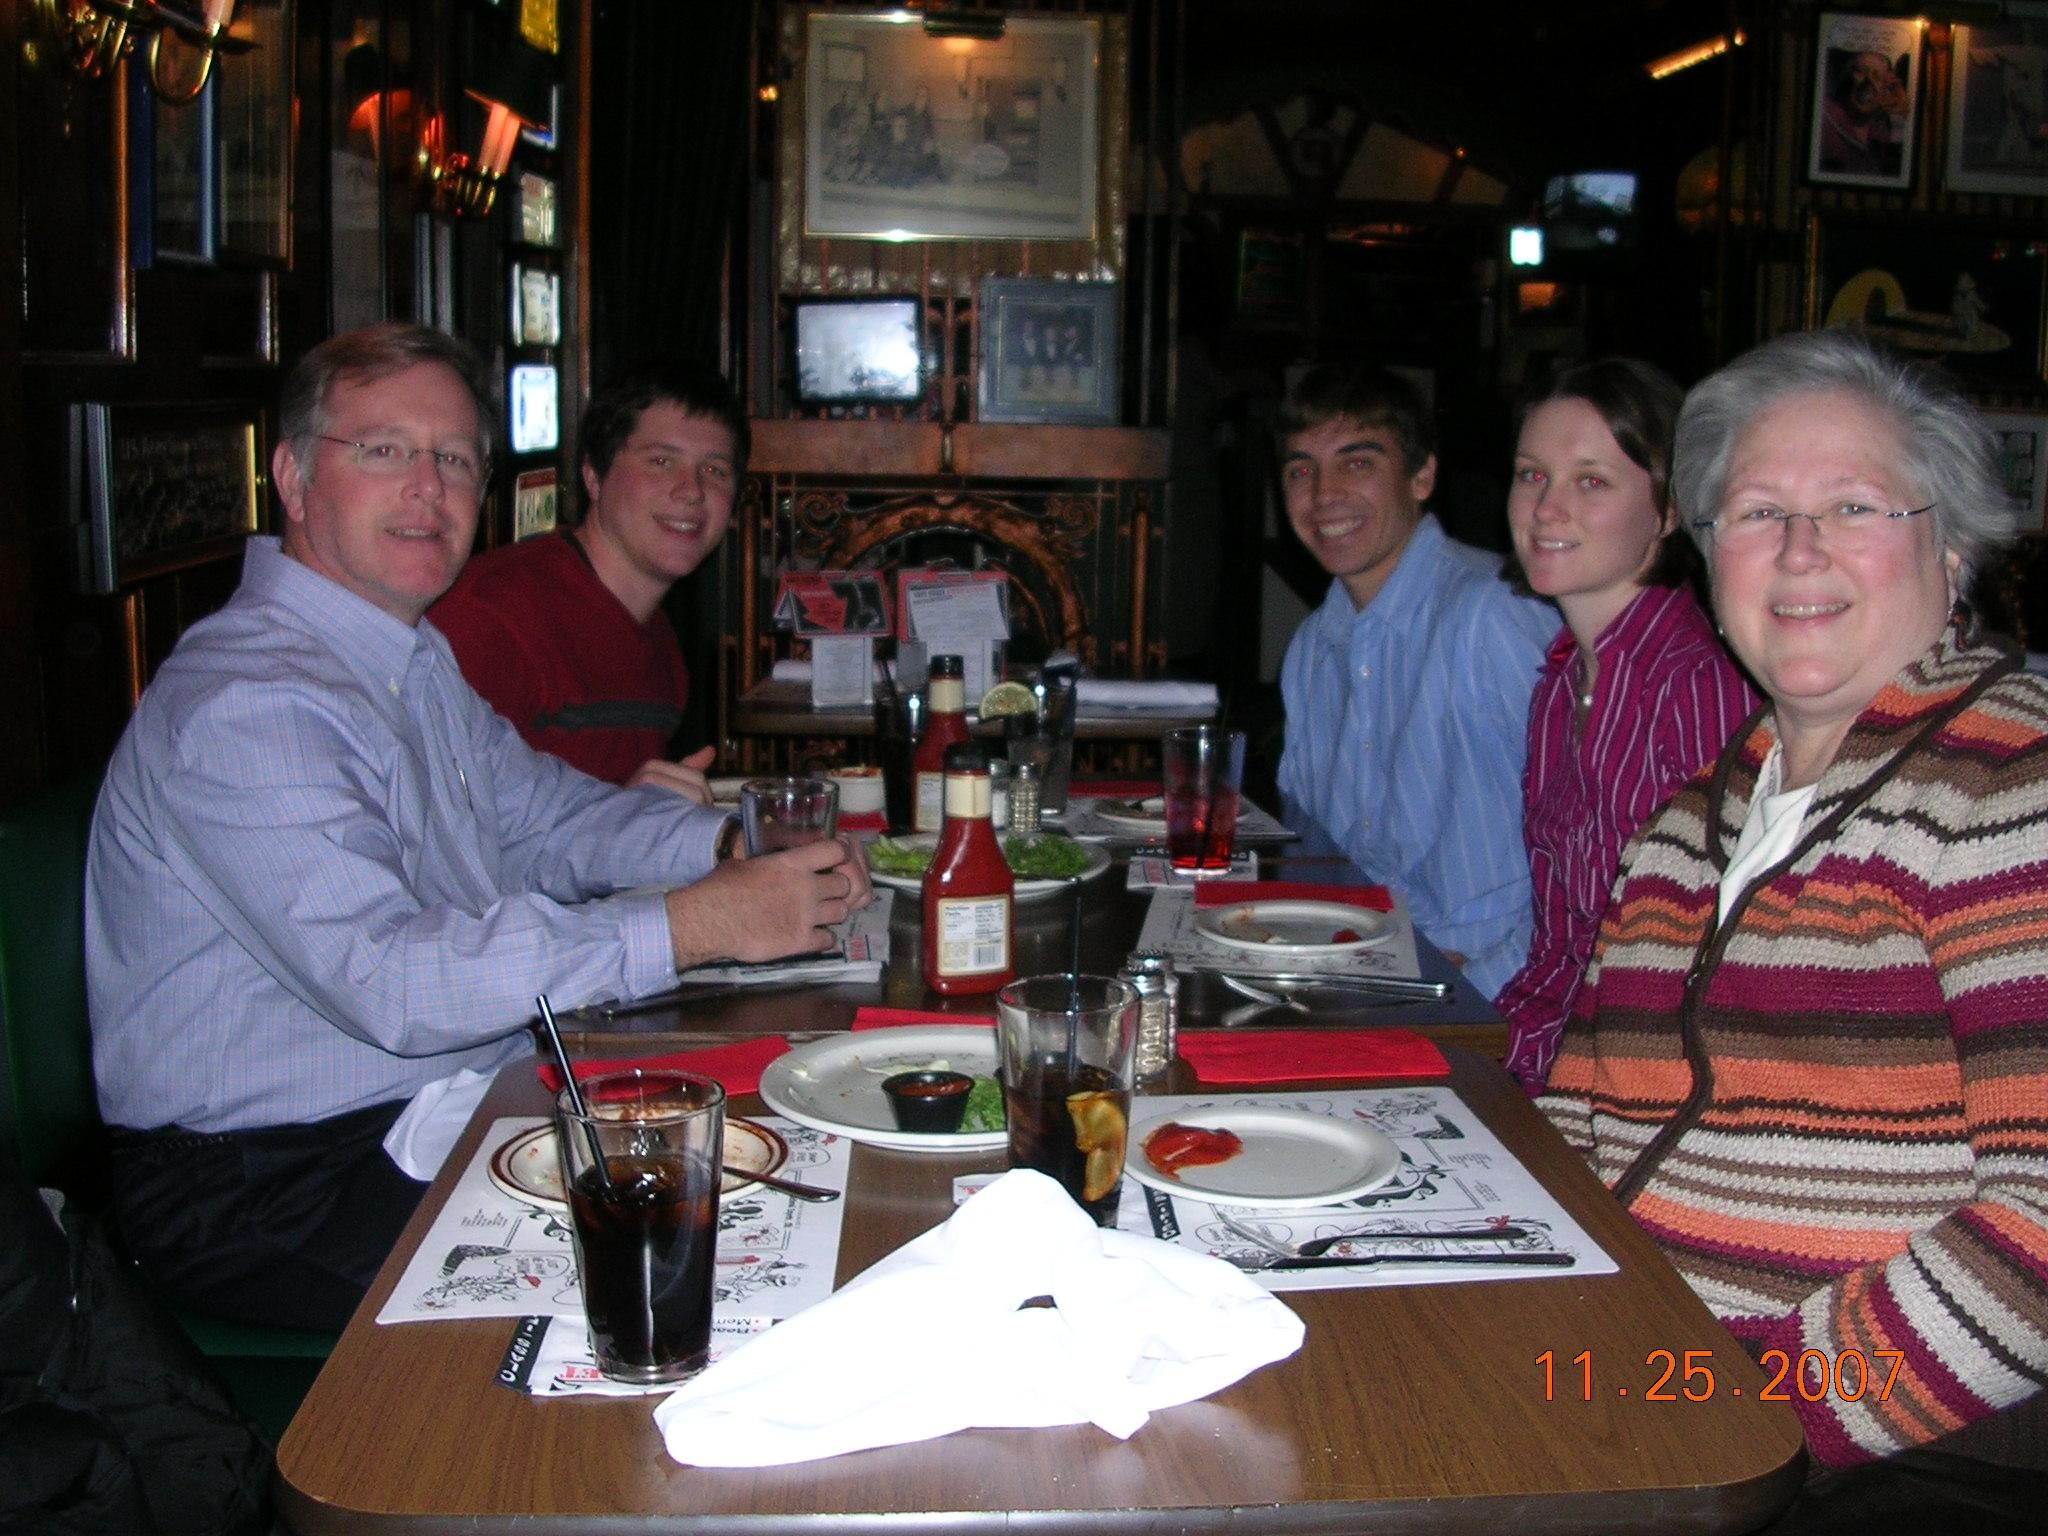 Dad, Jim, Andy, Ellen and Mom in Milwaukee, 11/25/2007 - safe house restaurant